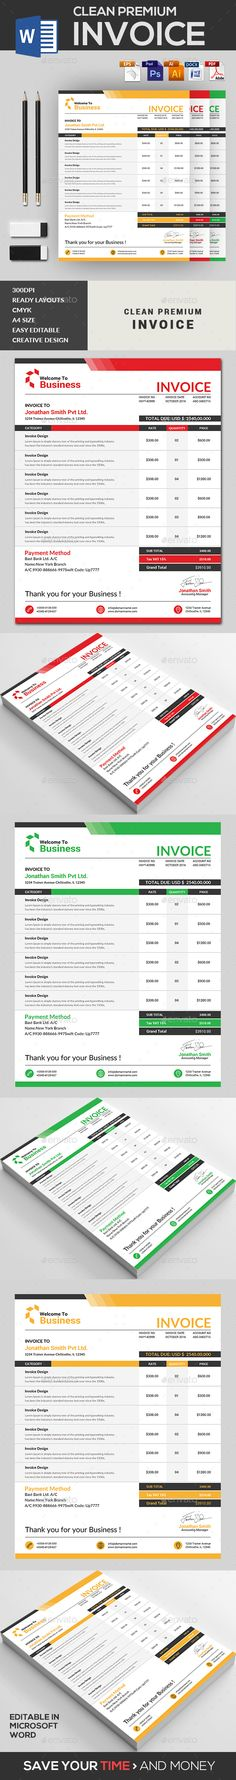 Futione Invoice Template Adobe photoshop, Creative and Template - invoice print